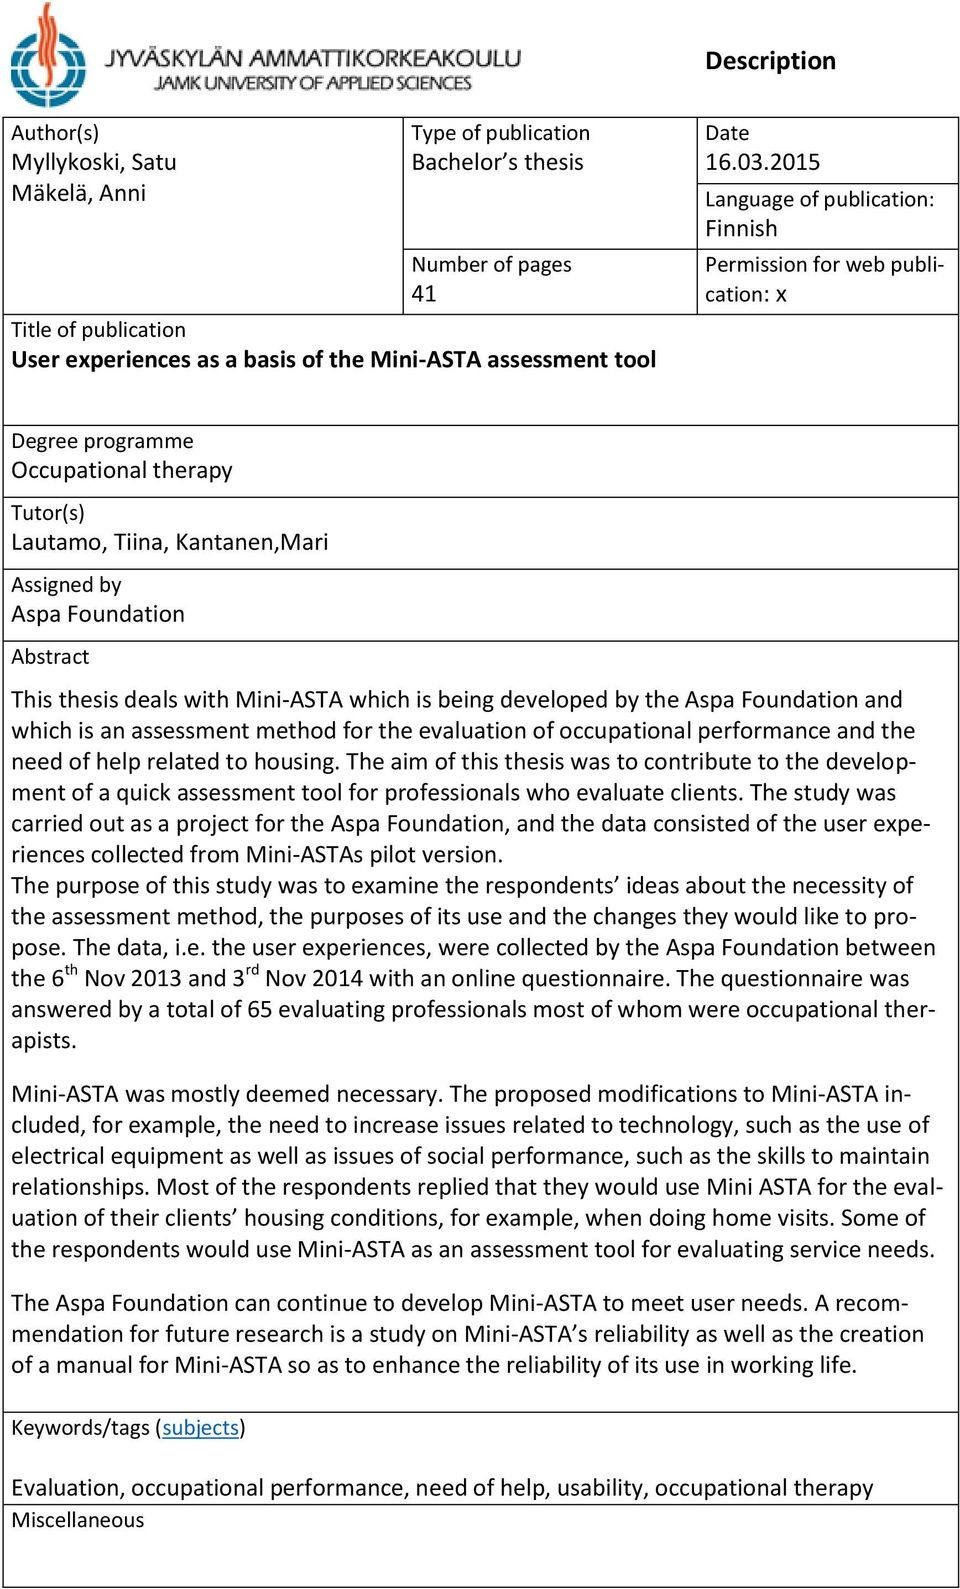 thesis deals with Mini-ASTA which is being developed by the Aspa Foundation and which is an assessment method for the evaluation of occupational performance and the need of help related to housing.